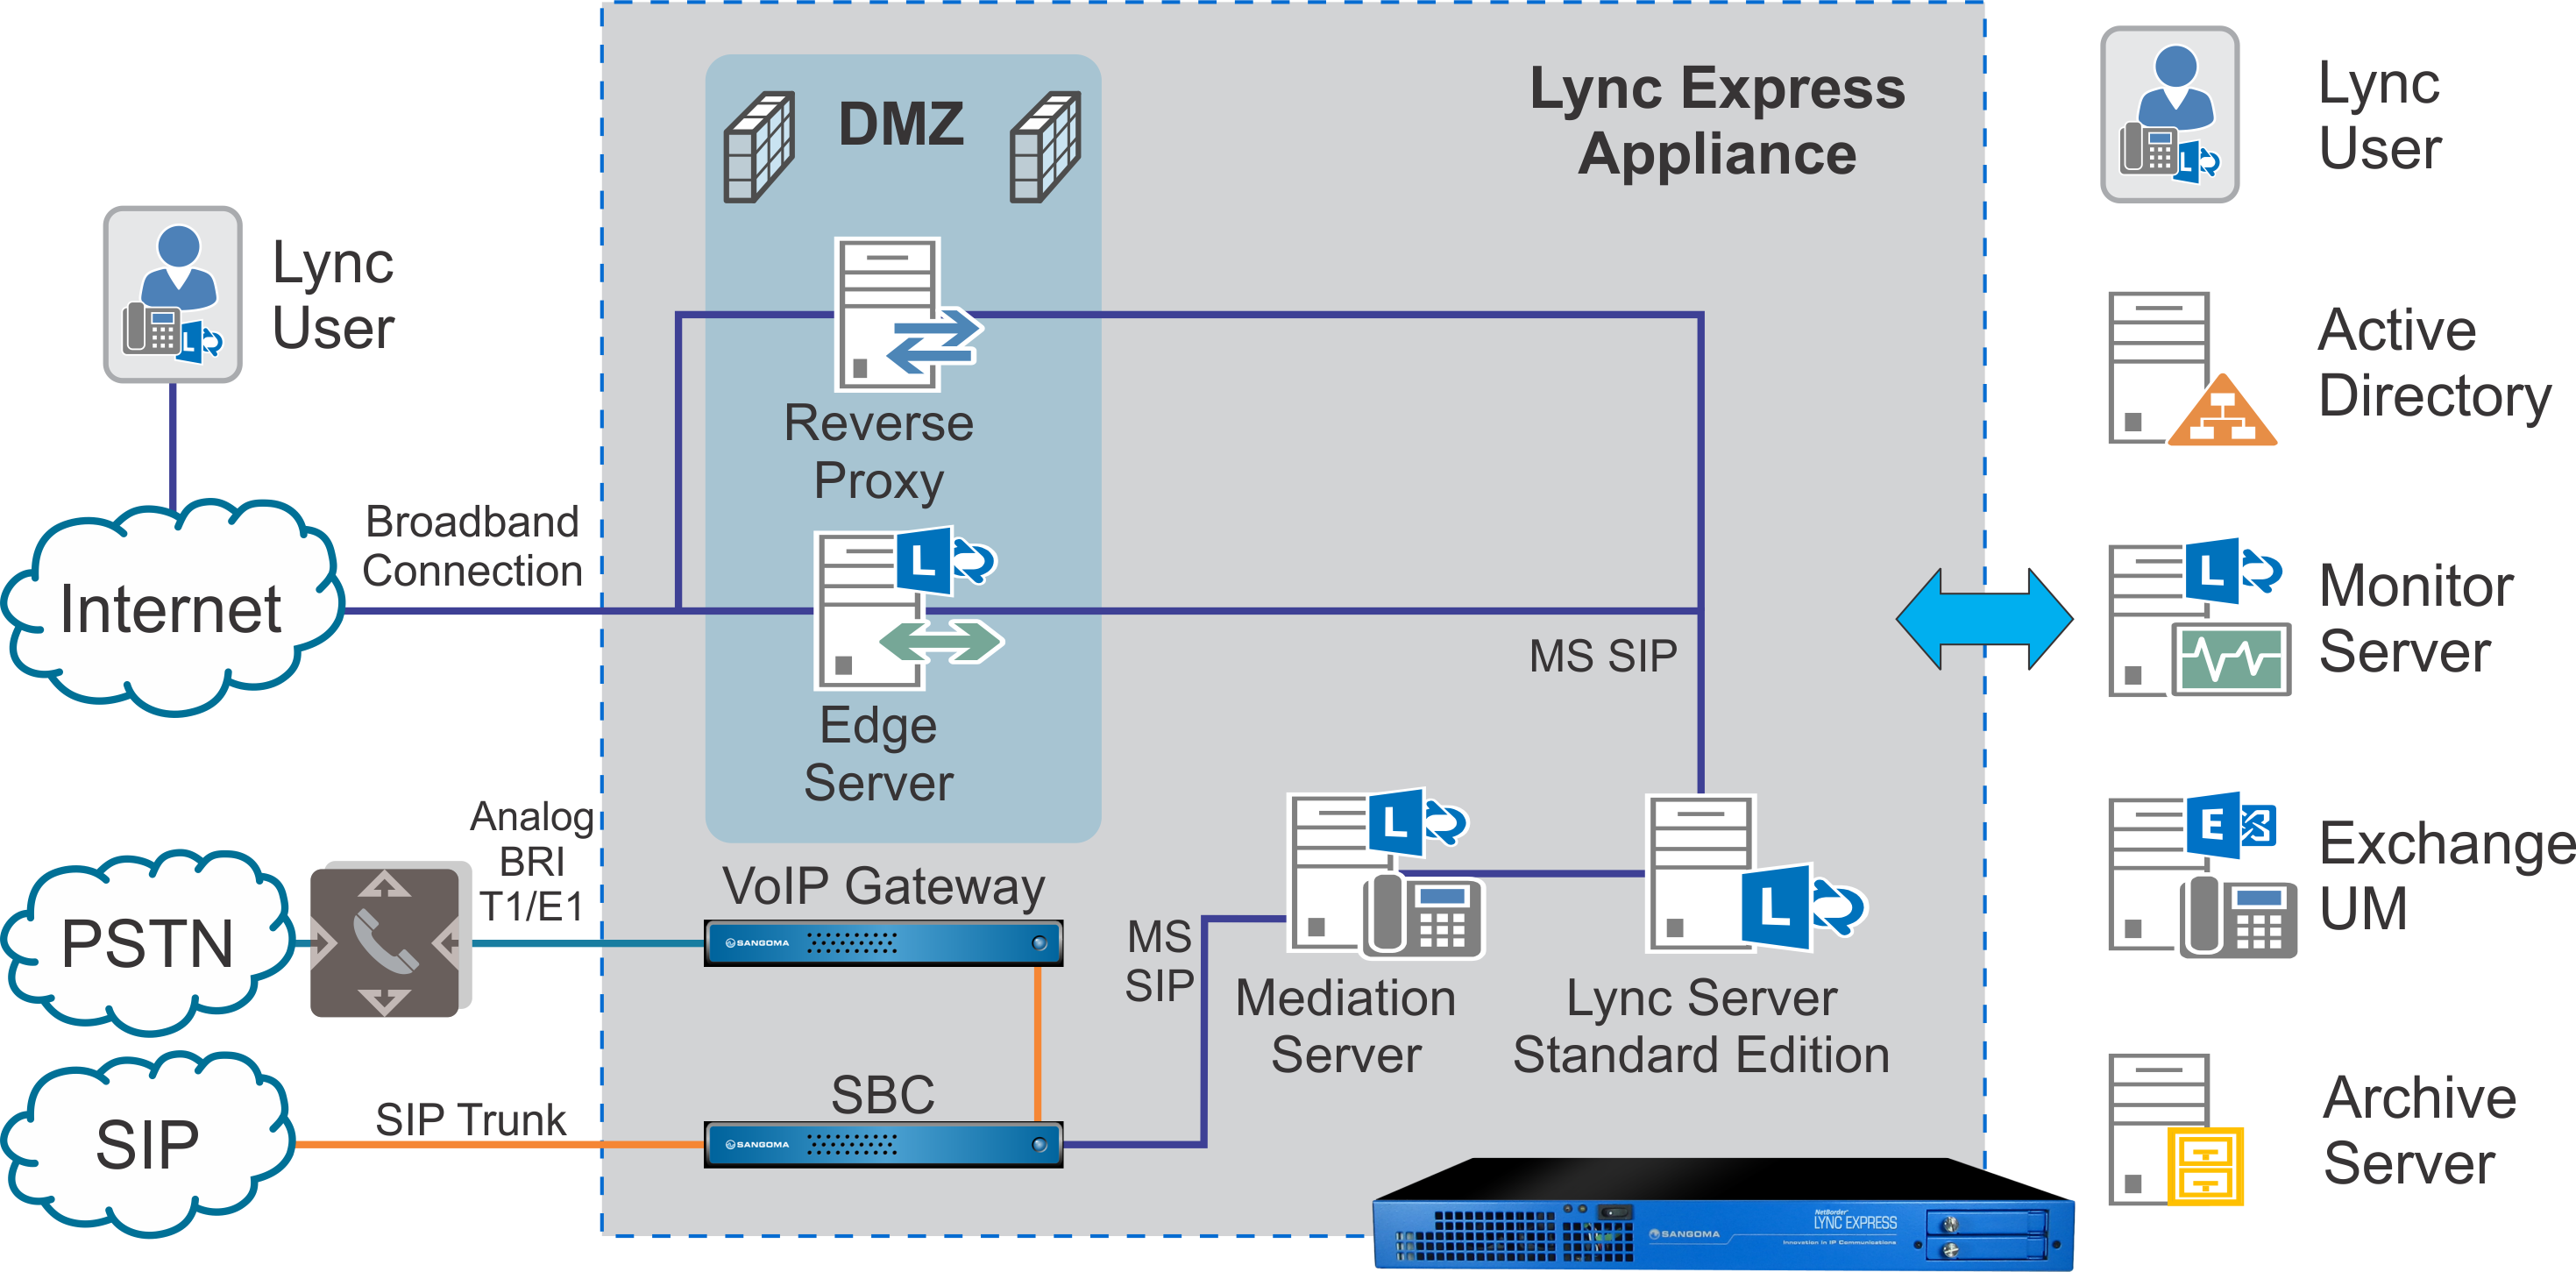 Sip trunking and pstn failover end of life products and features to the voip gateway if sip based pstn gateways are down please consult the diagram below to understand the interconnections of express for lync 20 ccuart Images